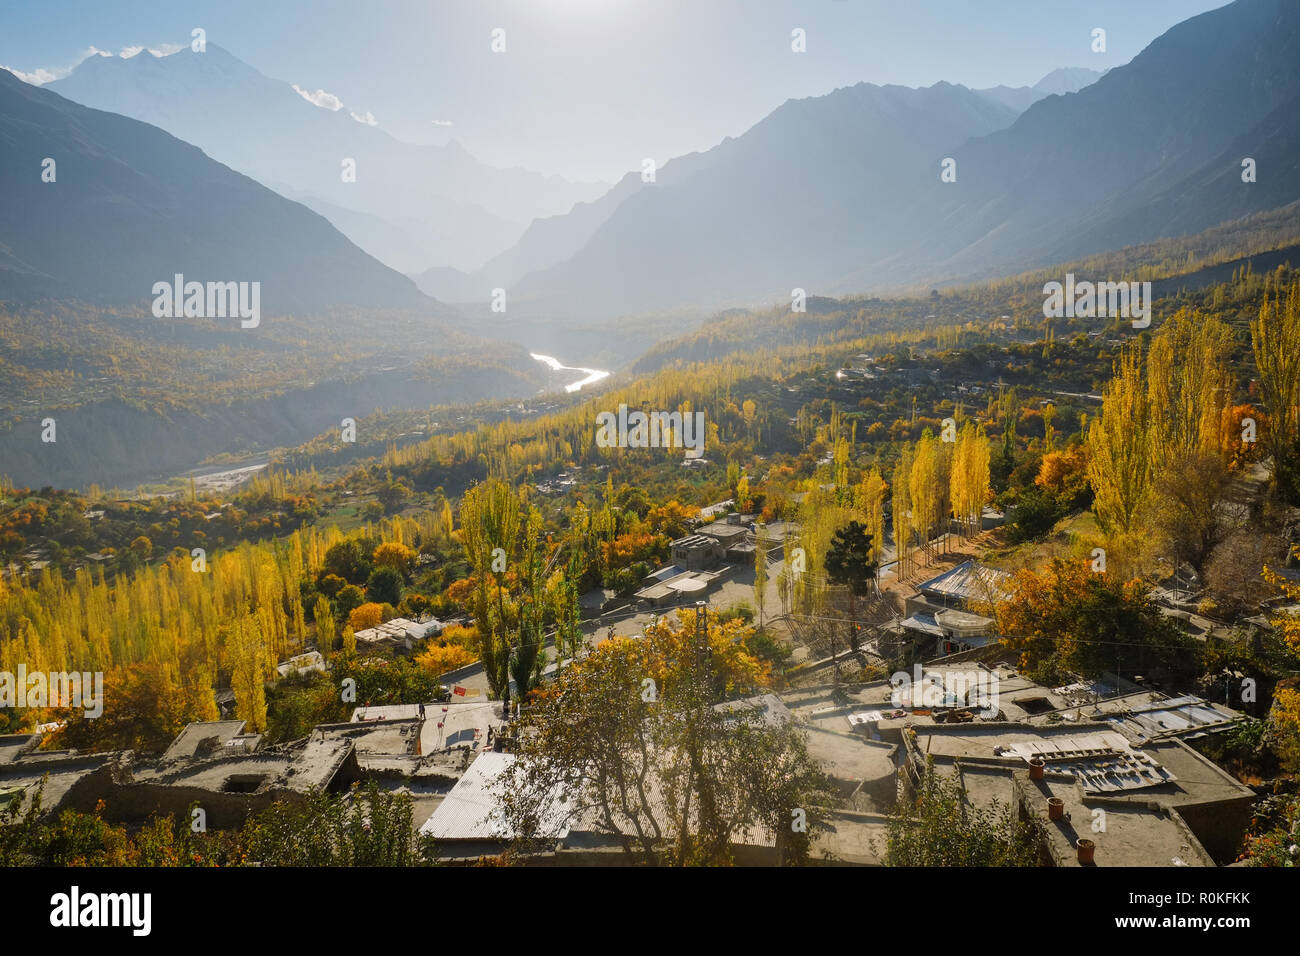 Landscape view of autumn in Hunza valley, Gilgit-Baltistan, Pakistan. - Stock Image